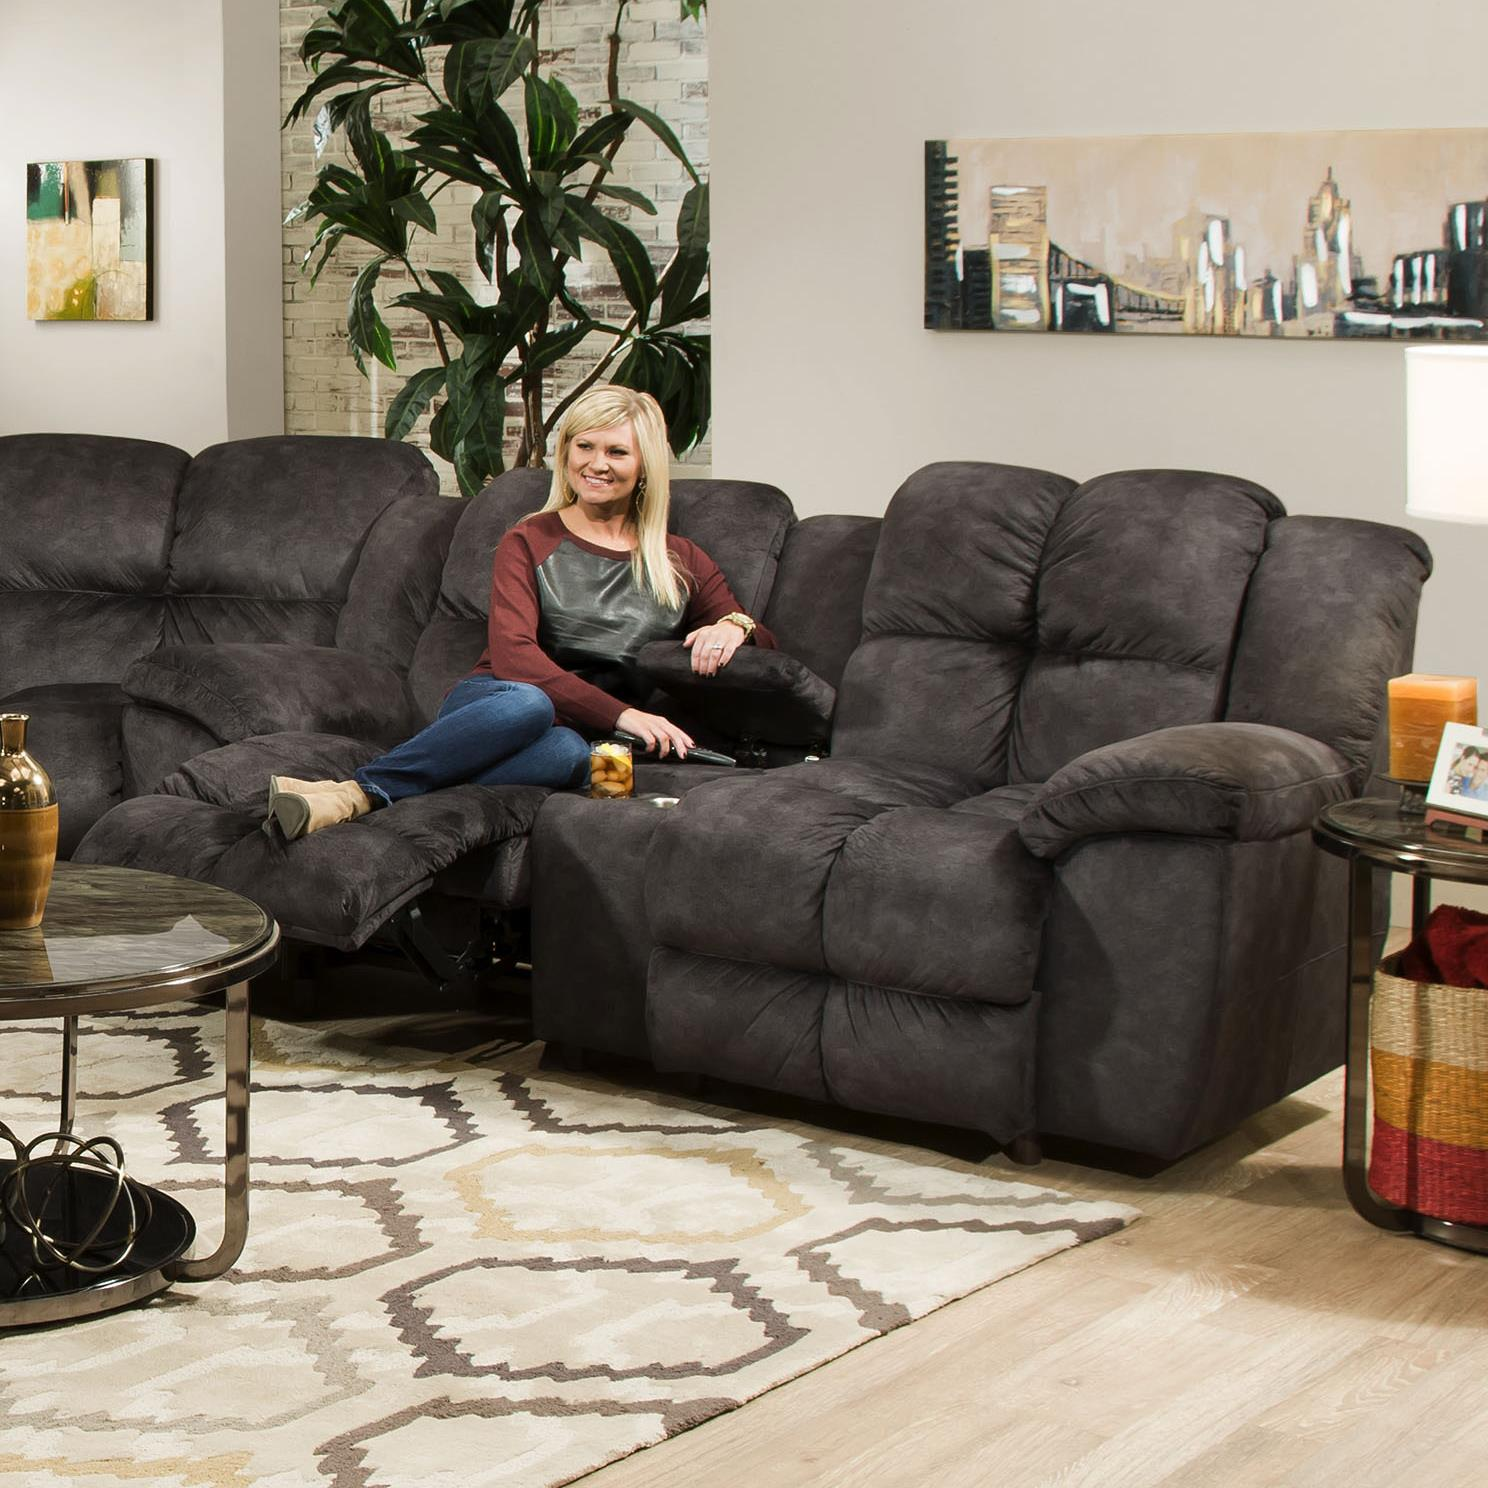 Franklin 461 Reclining Console Loveseat - Item Number: 46134-8415-03